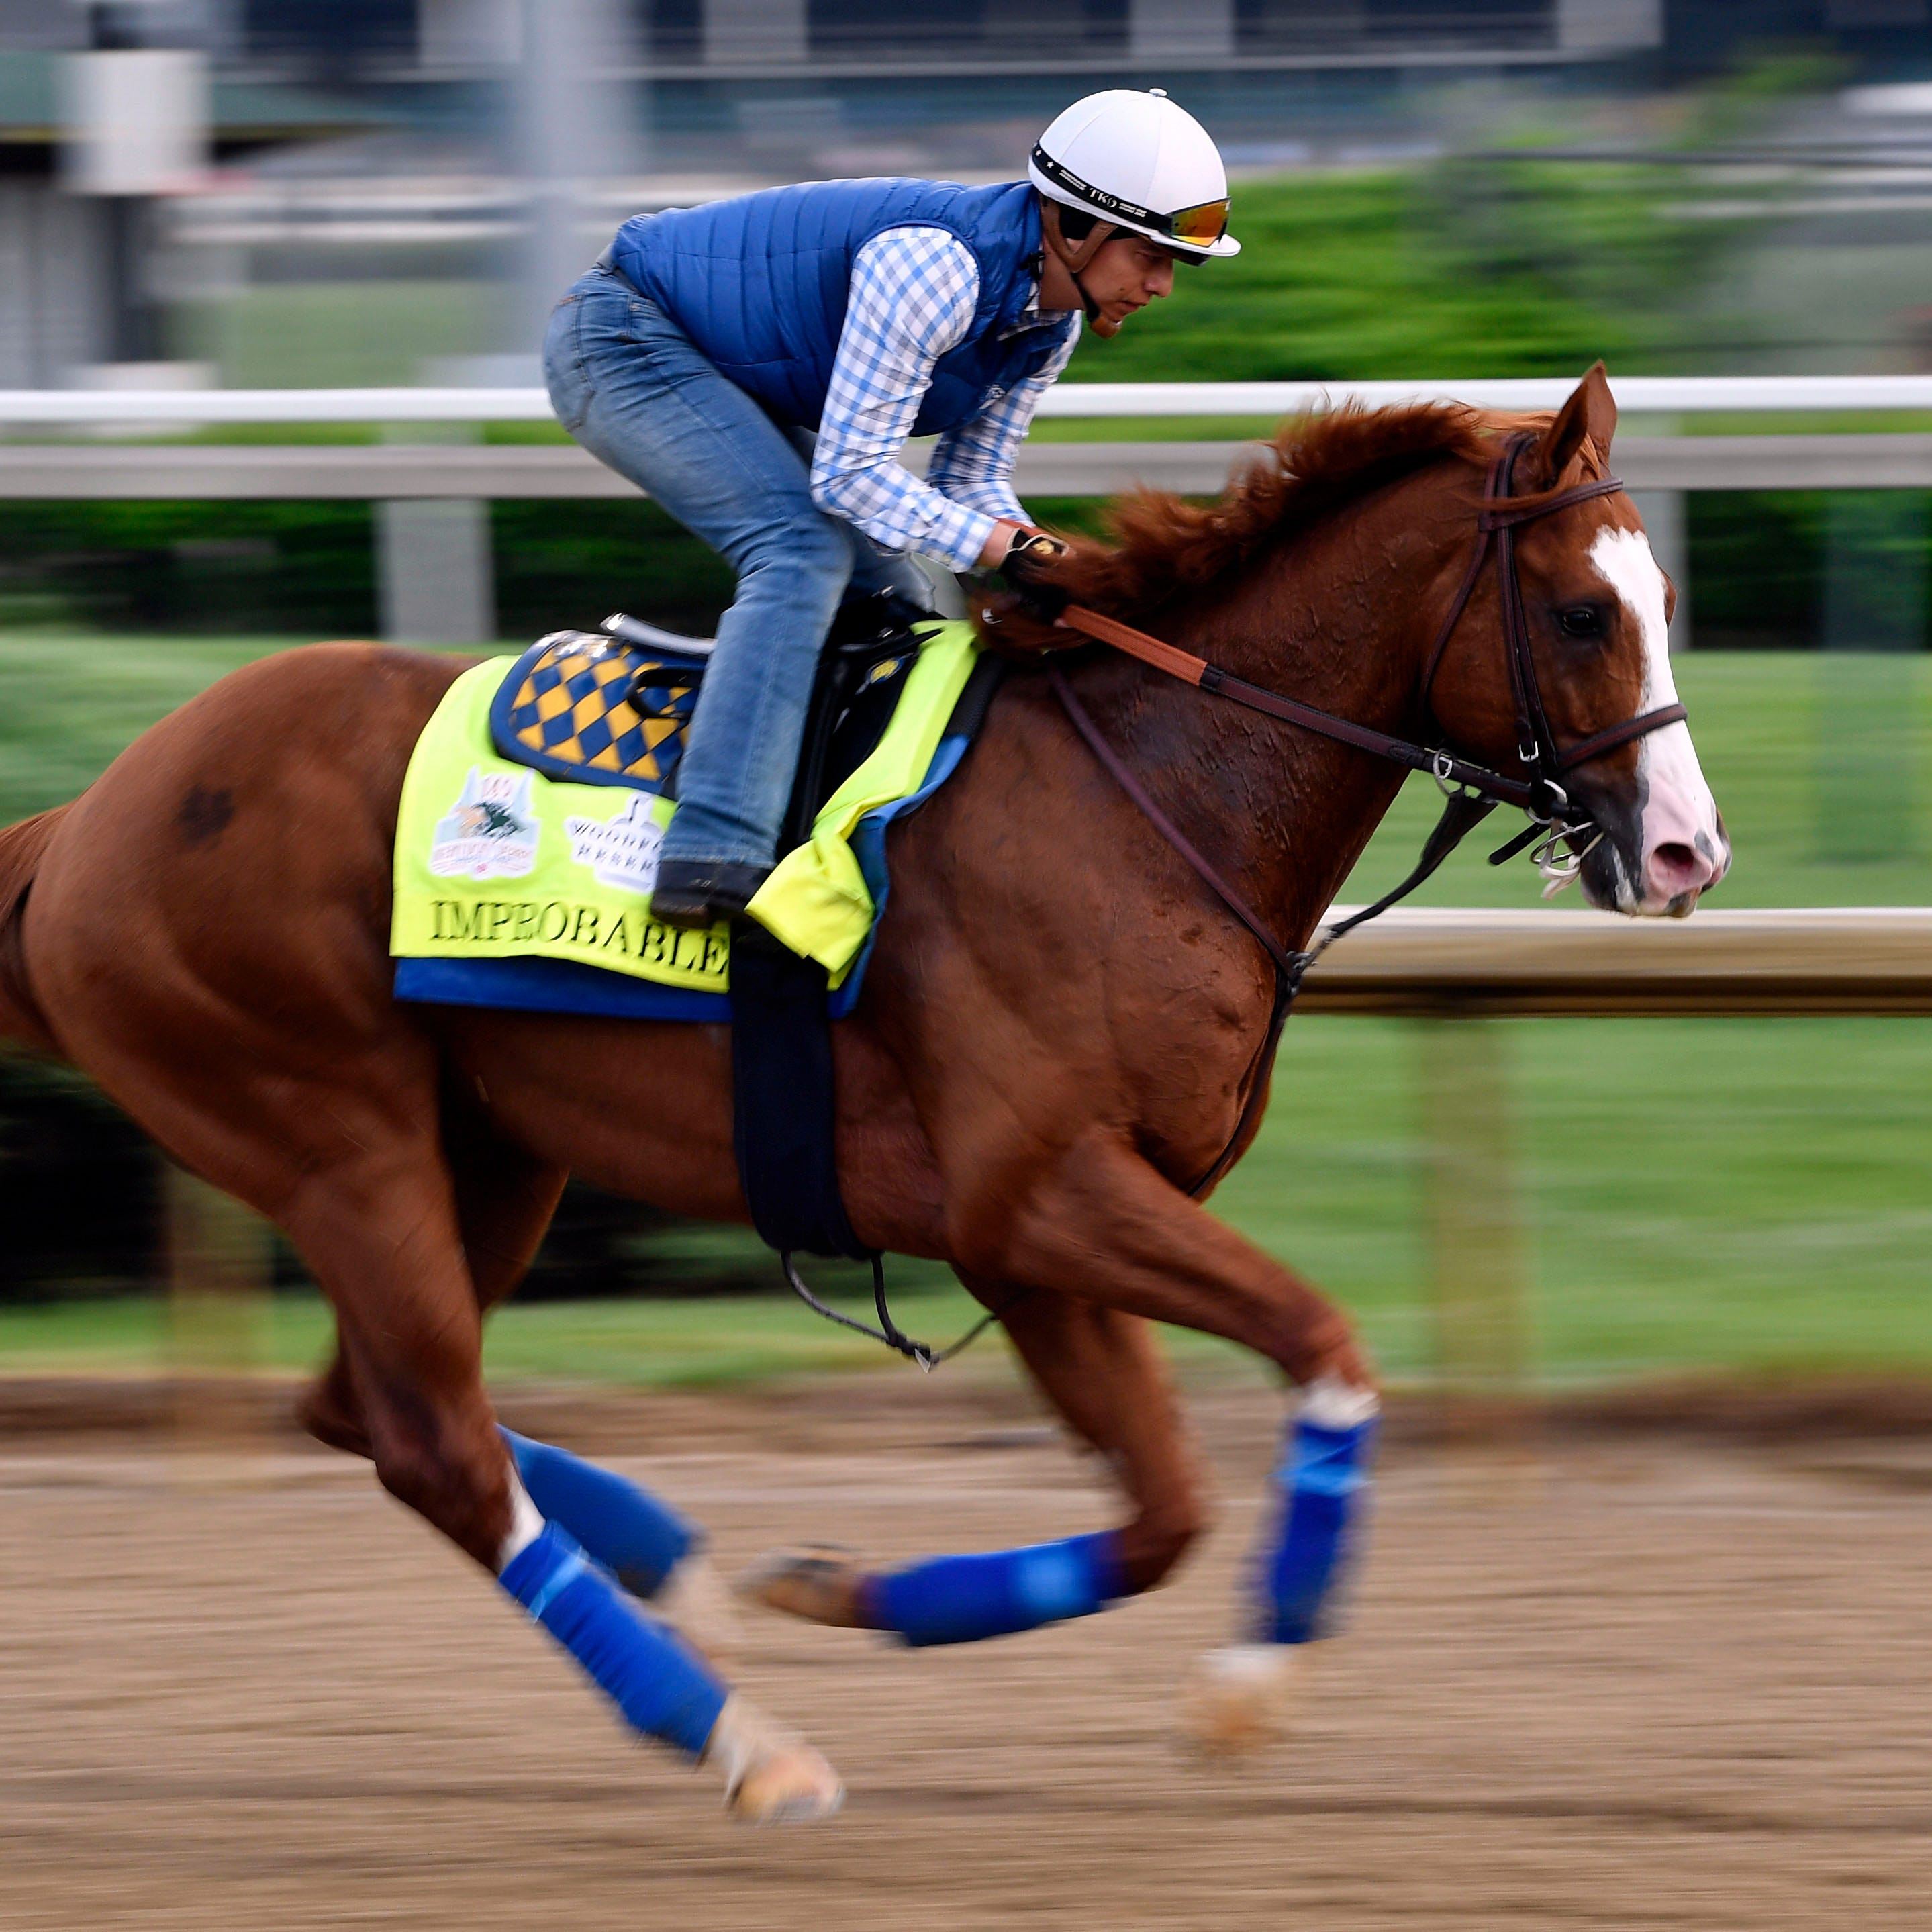 2019 Preakness: Post postions, odds, with Improbable the favorite